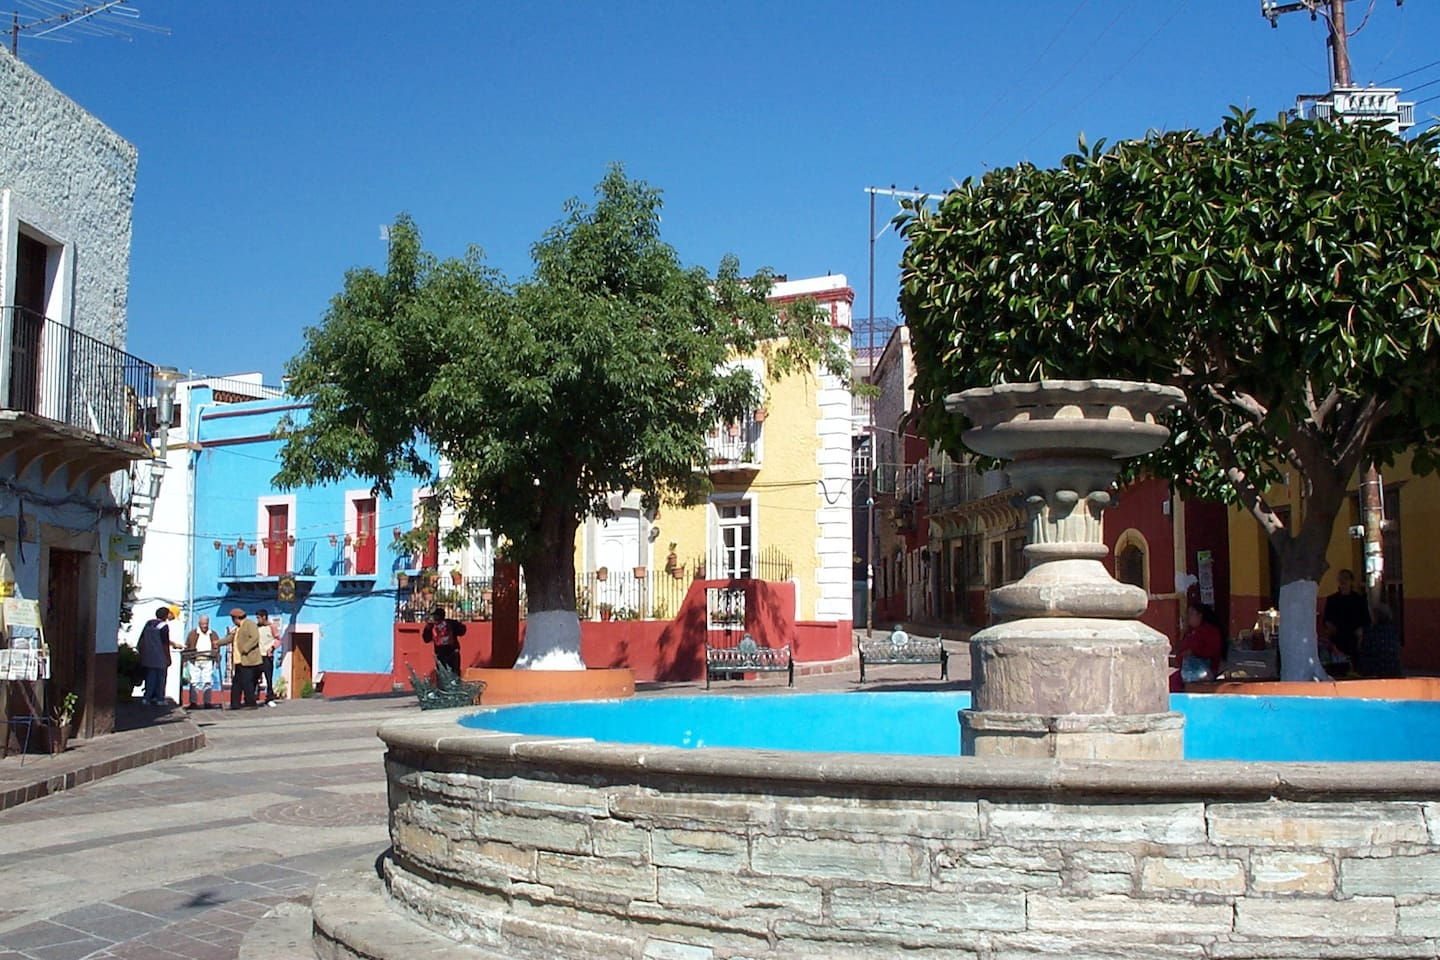 Closer view of the fountain in the center of Plazuela de Mexiamora